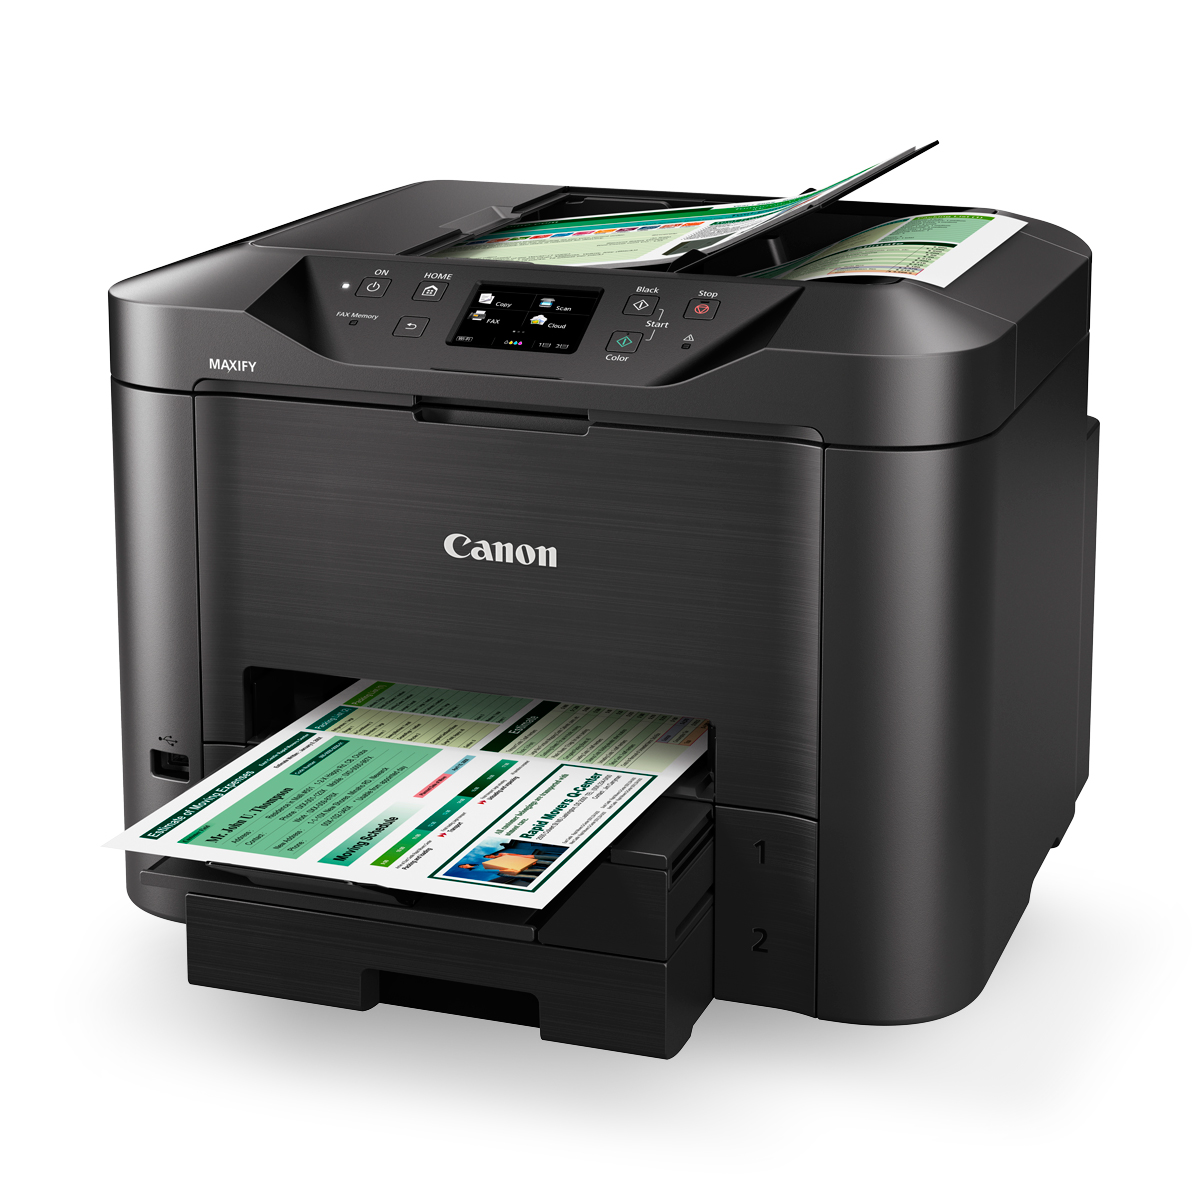 MAXIFY MB5360 black angled with paper office professional printer